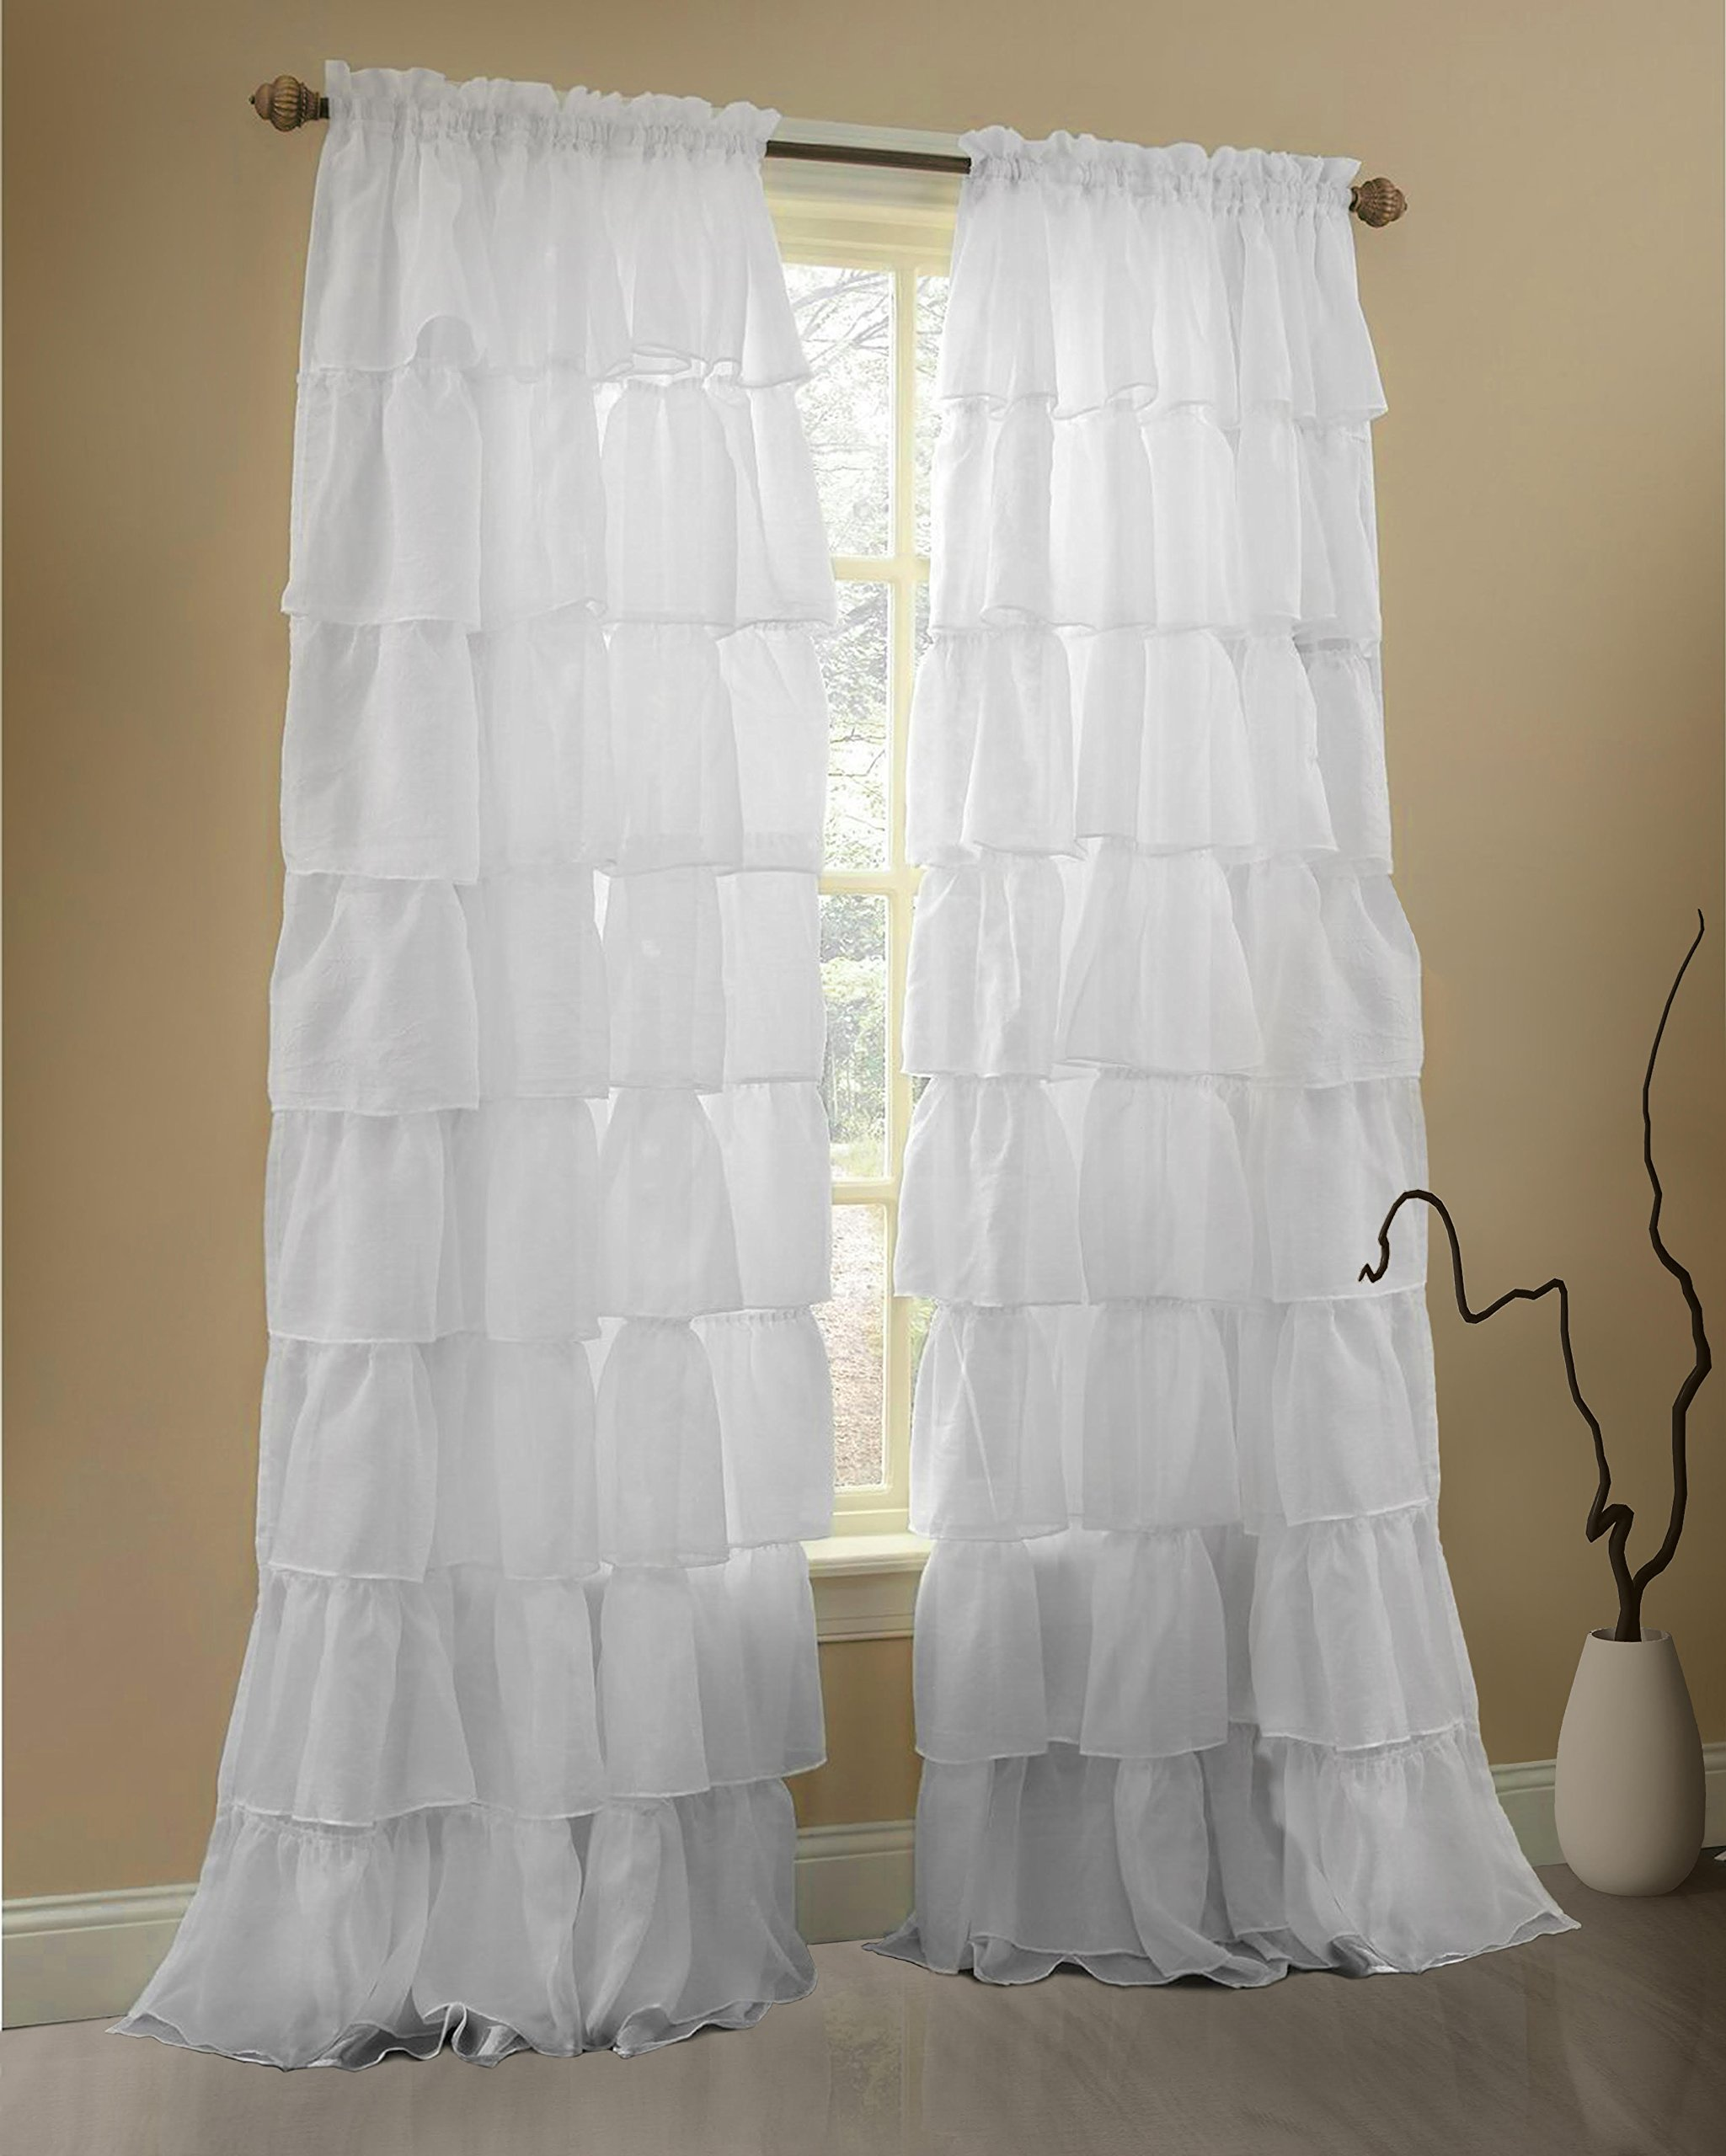 Gee Di Moda White Ruffle Curtains Gypsy Lace Curtains for Bedroom Curtains for Living Room - White 60x84 inch Ruffled Curtains for Kids Room Shabby Chic Curtain for Nursery Kids Curtains for Girls